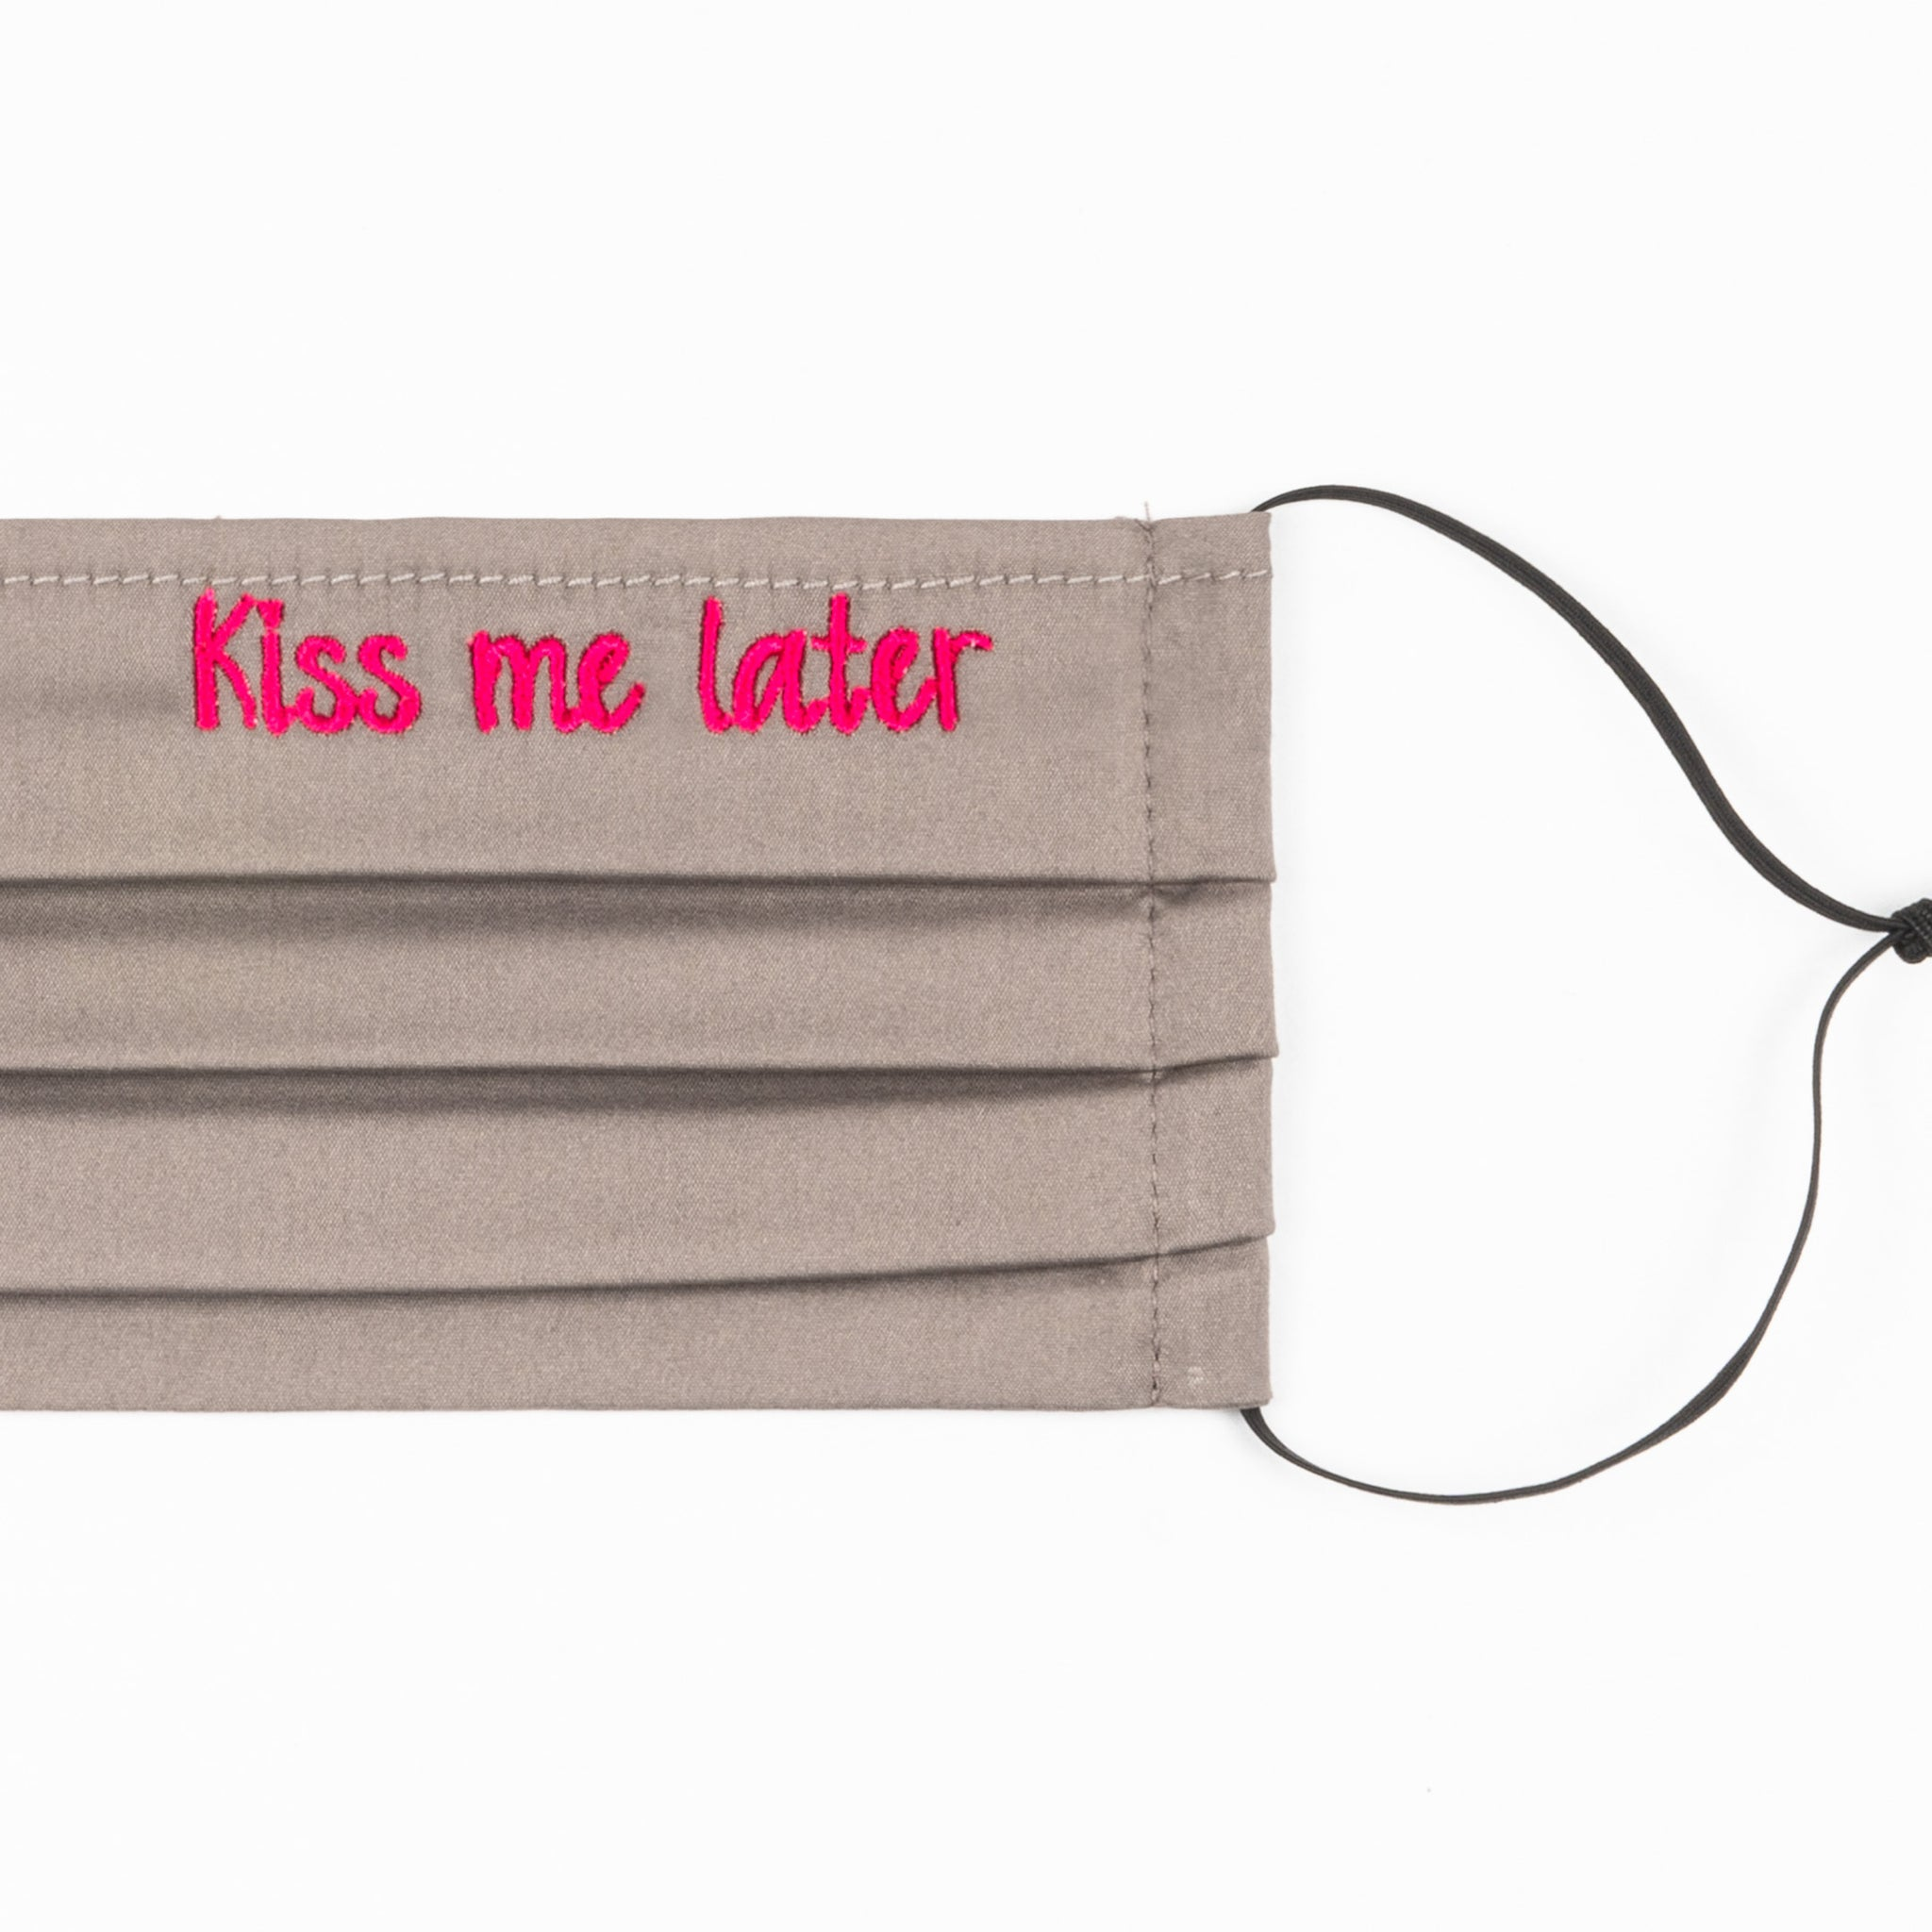 Kiss me later - masque brodé